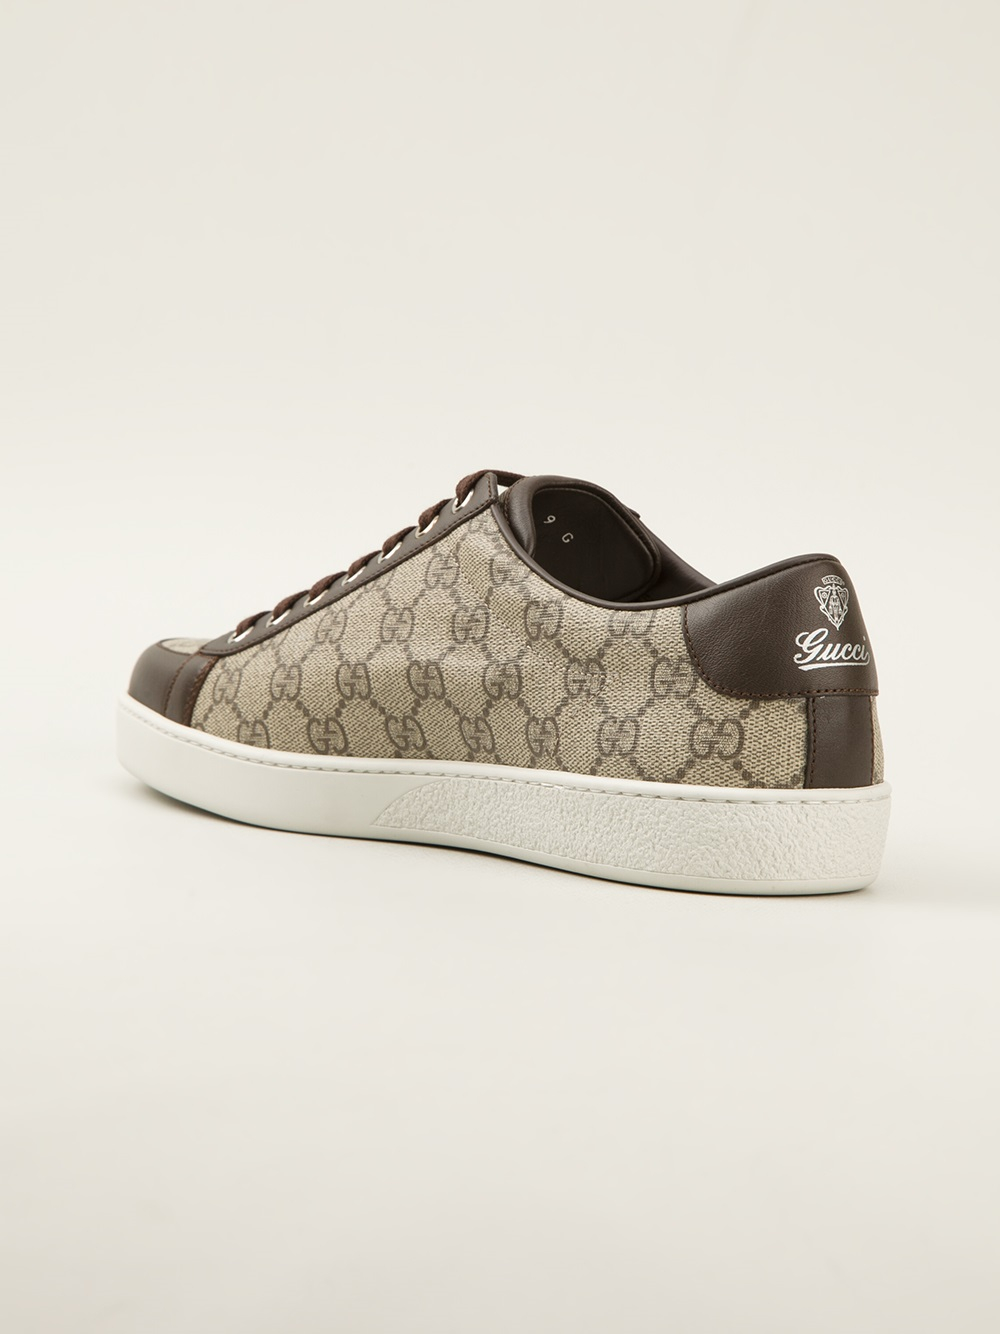 d098589c8f43 Lyst - Gucci Monogram Print Trainer in Brown for Men